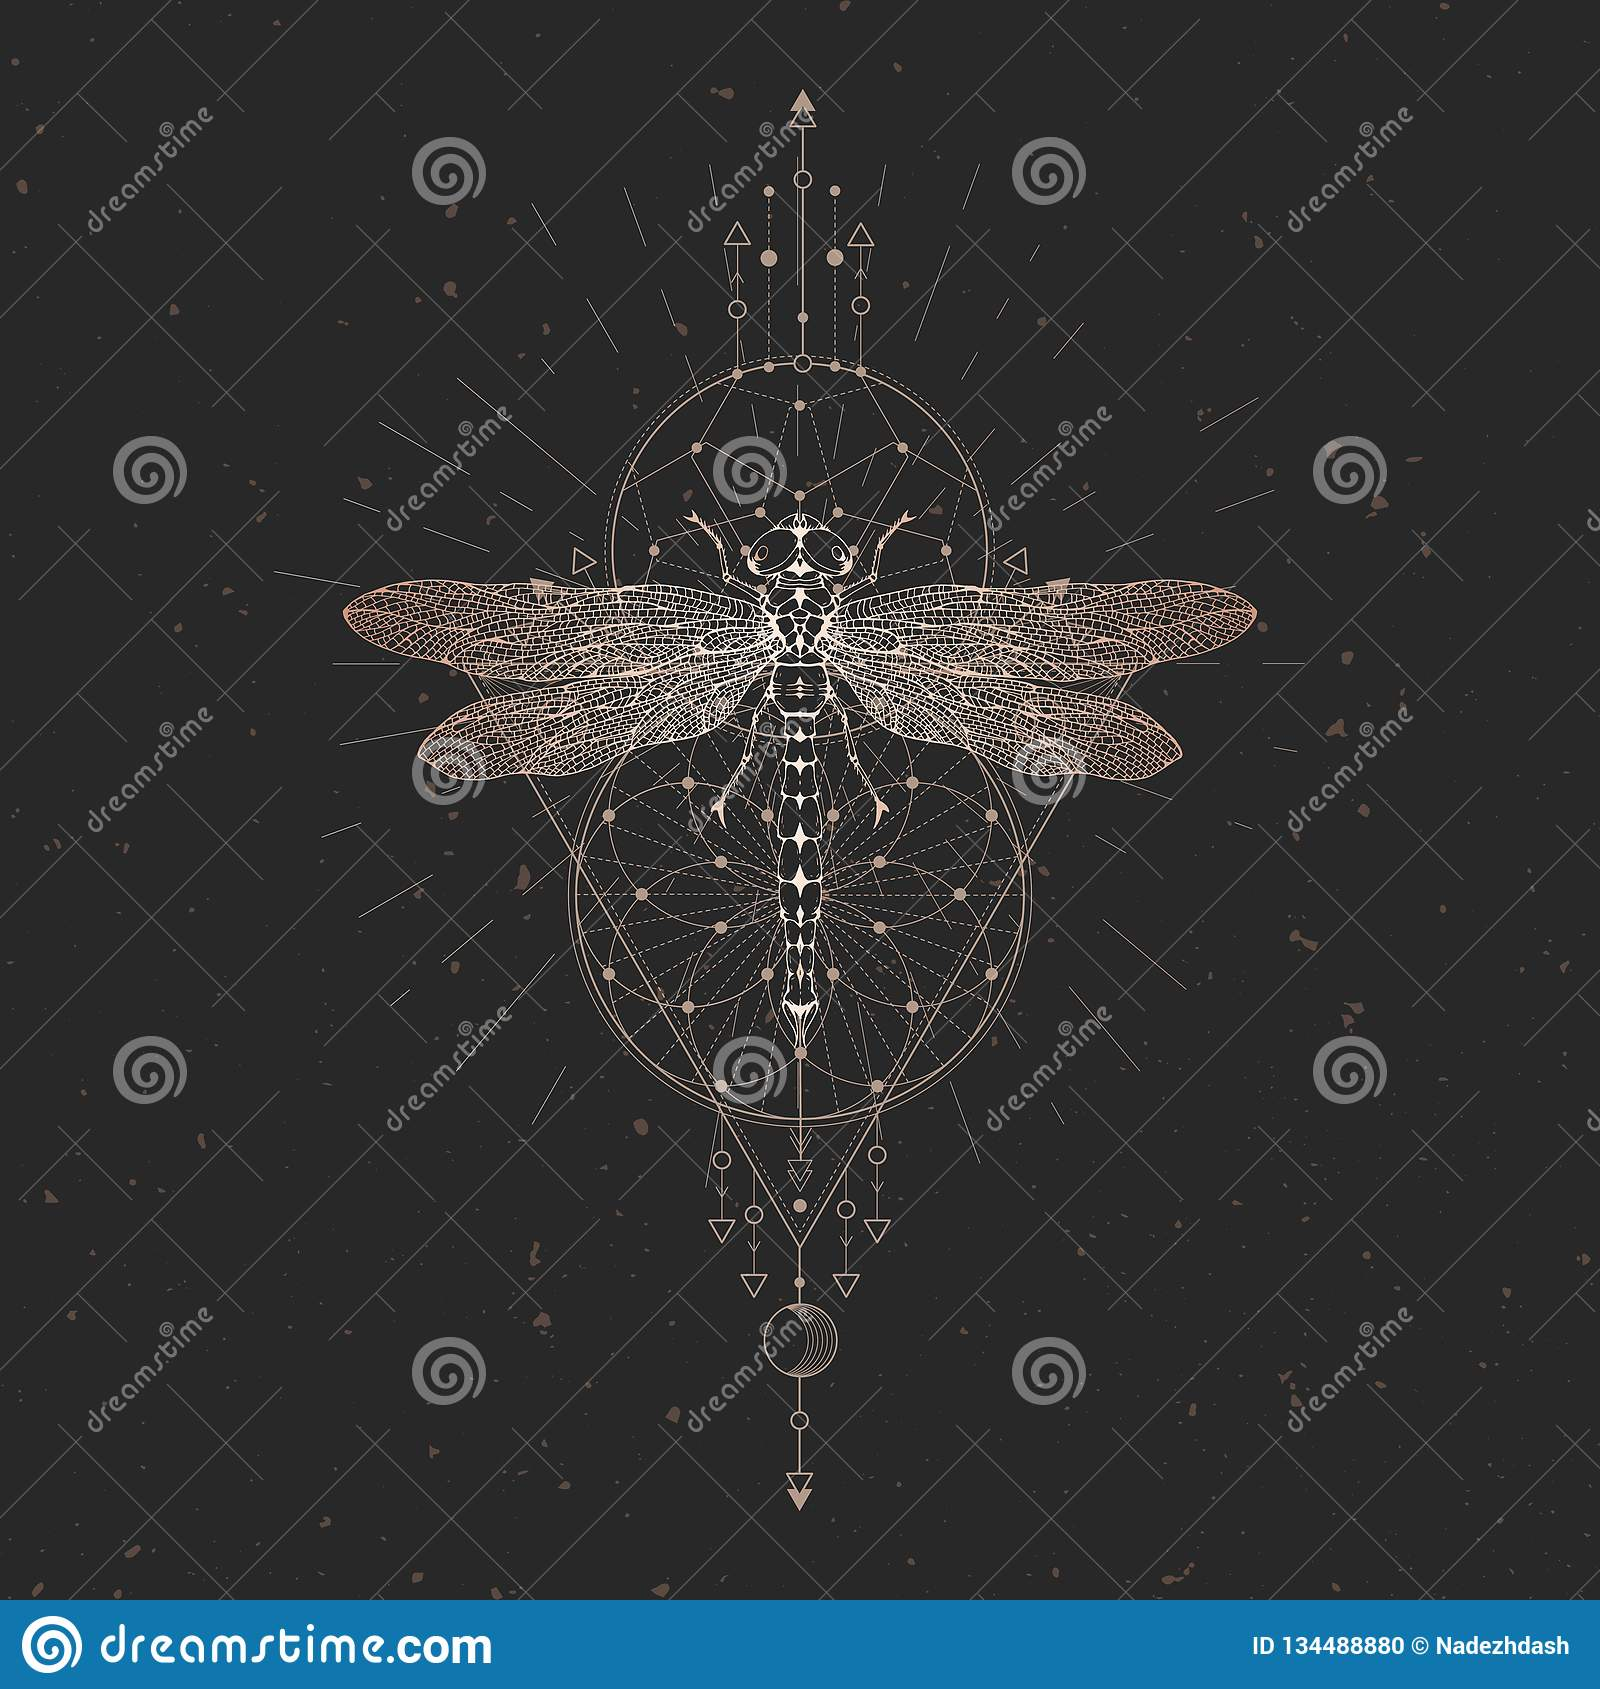 Vector illustration with hand drawn dragonfly and Sacred geometric symbol on black vintage background. Abstract mystic sign. Gold